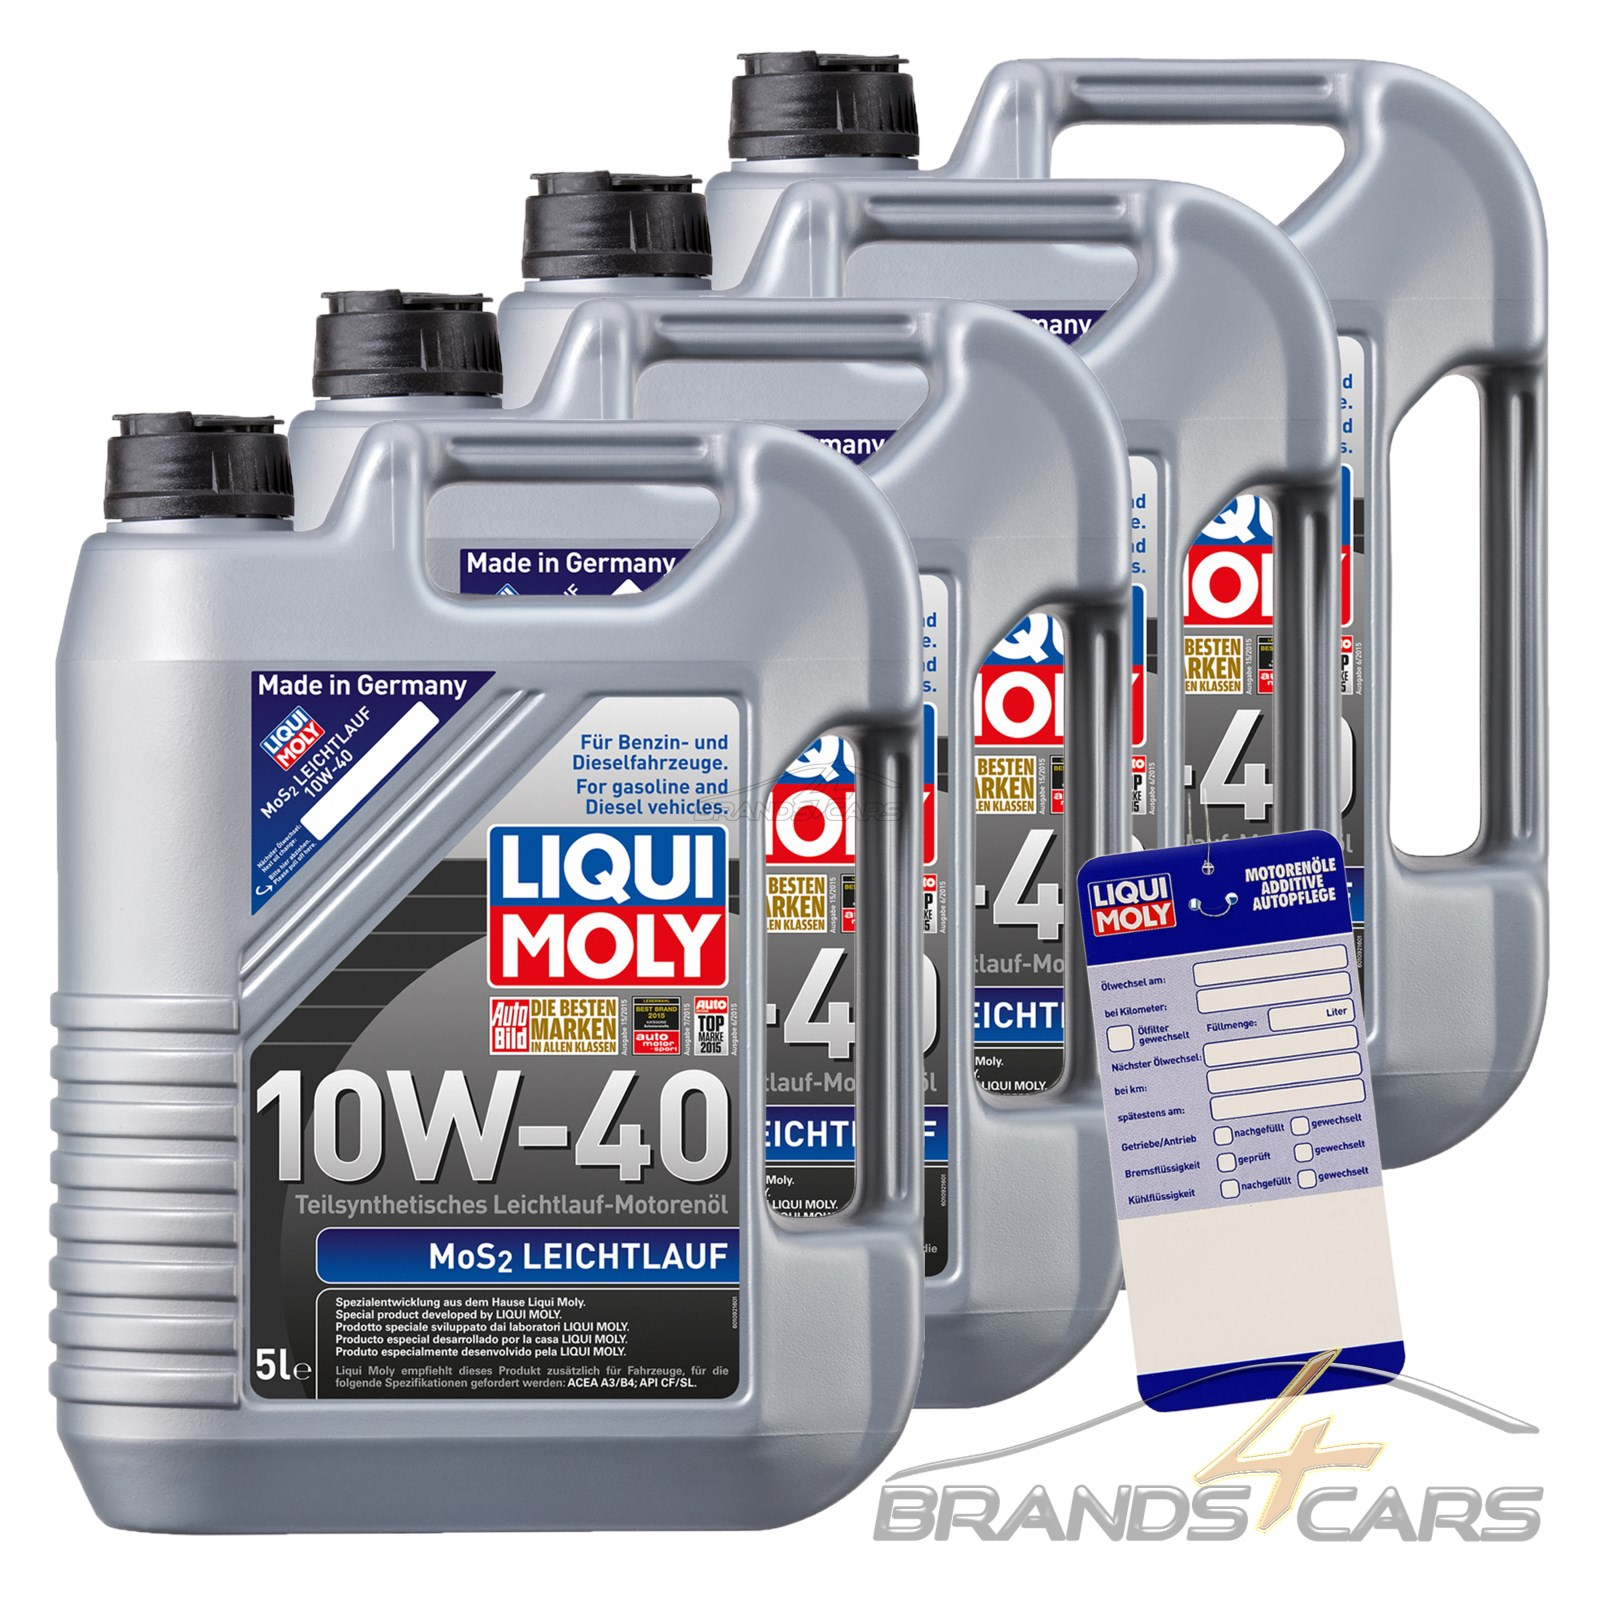 4x 5 l 20 liter liqui moly mos2 leichtlauf 10w 40 motor l motoren l 32098836 ebay. Black Bedroom Furniture Sets. Home Design Ideas